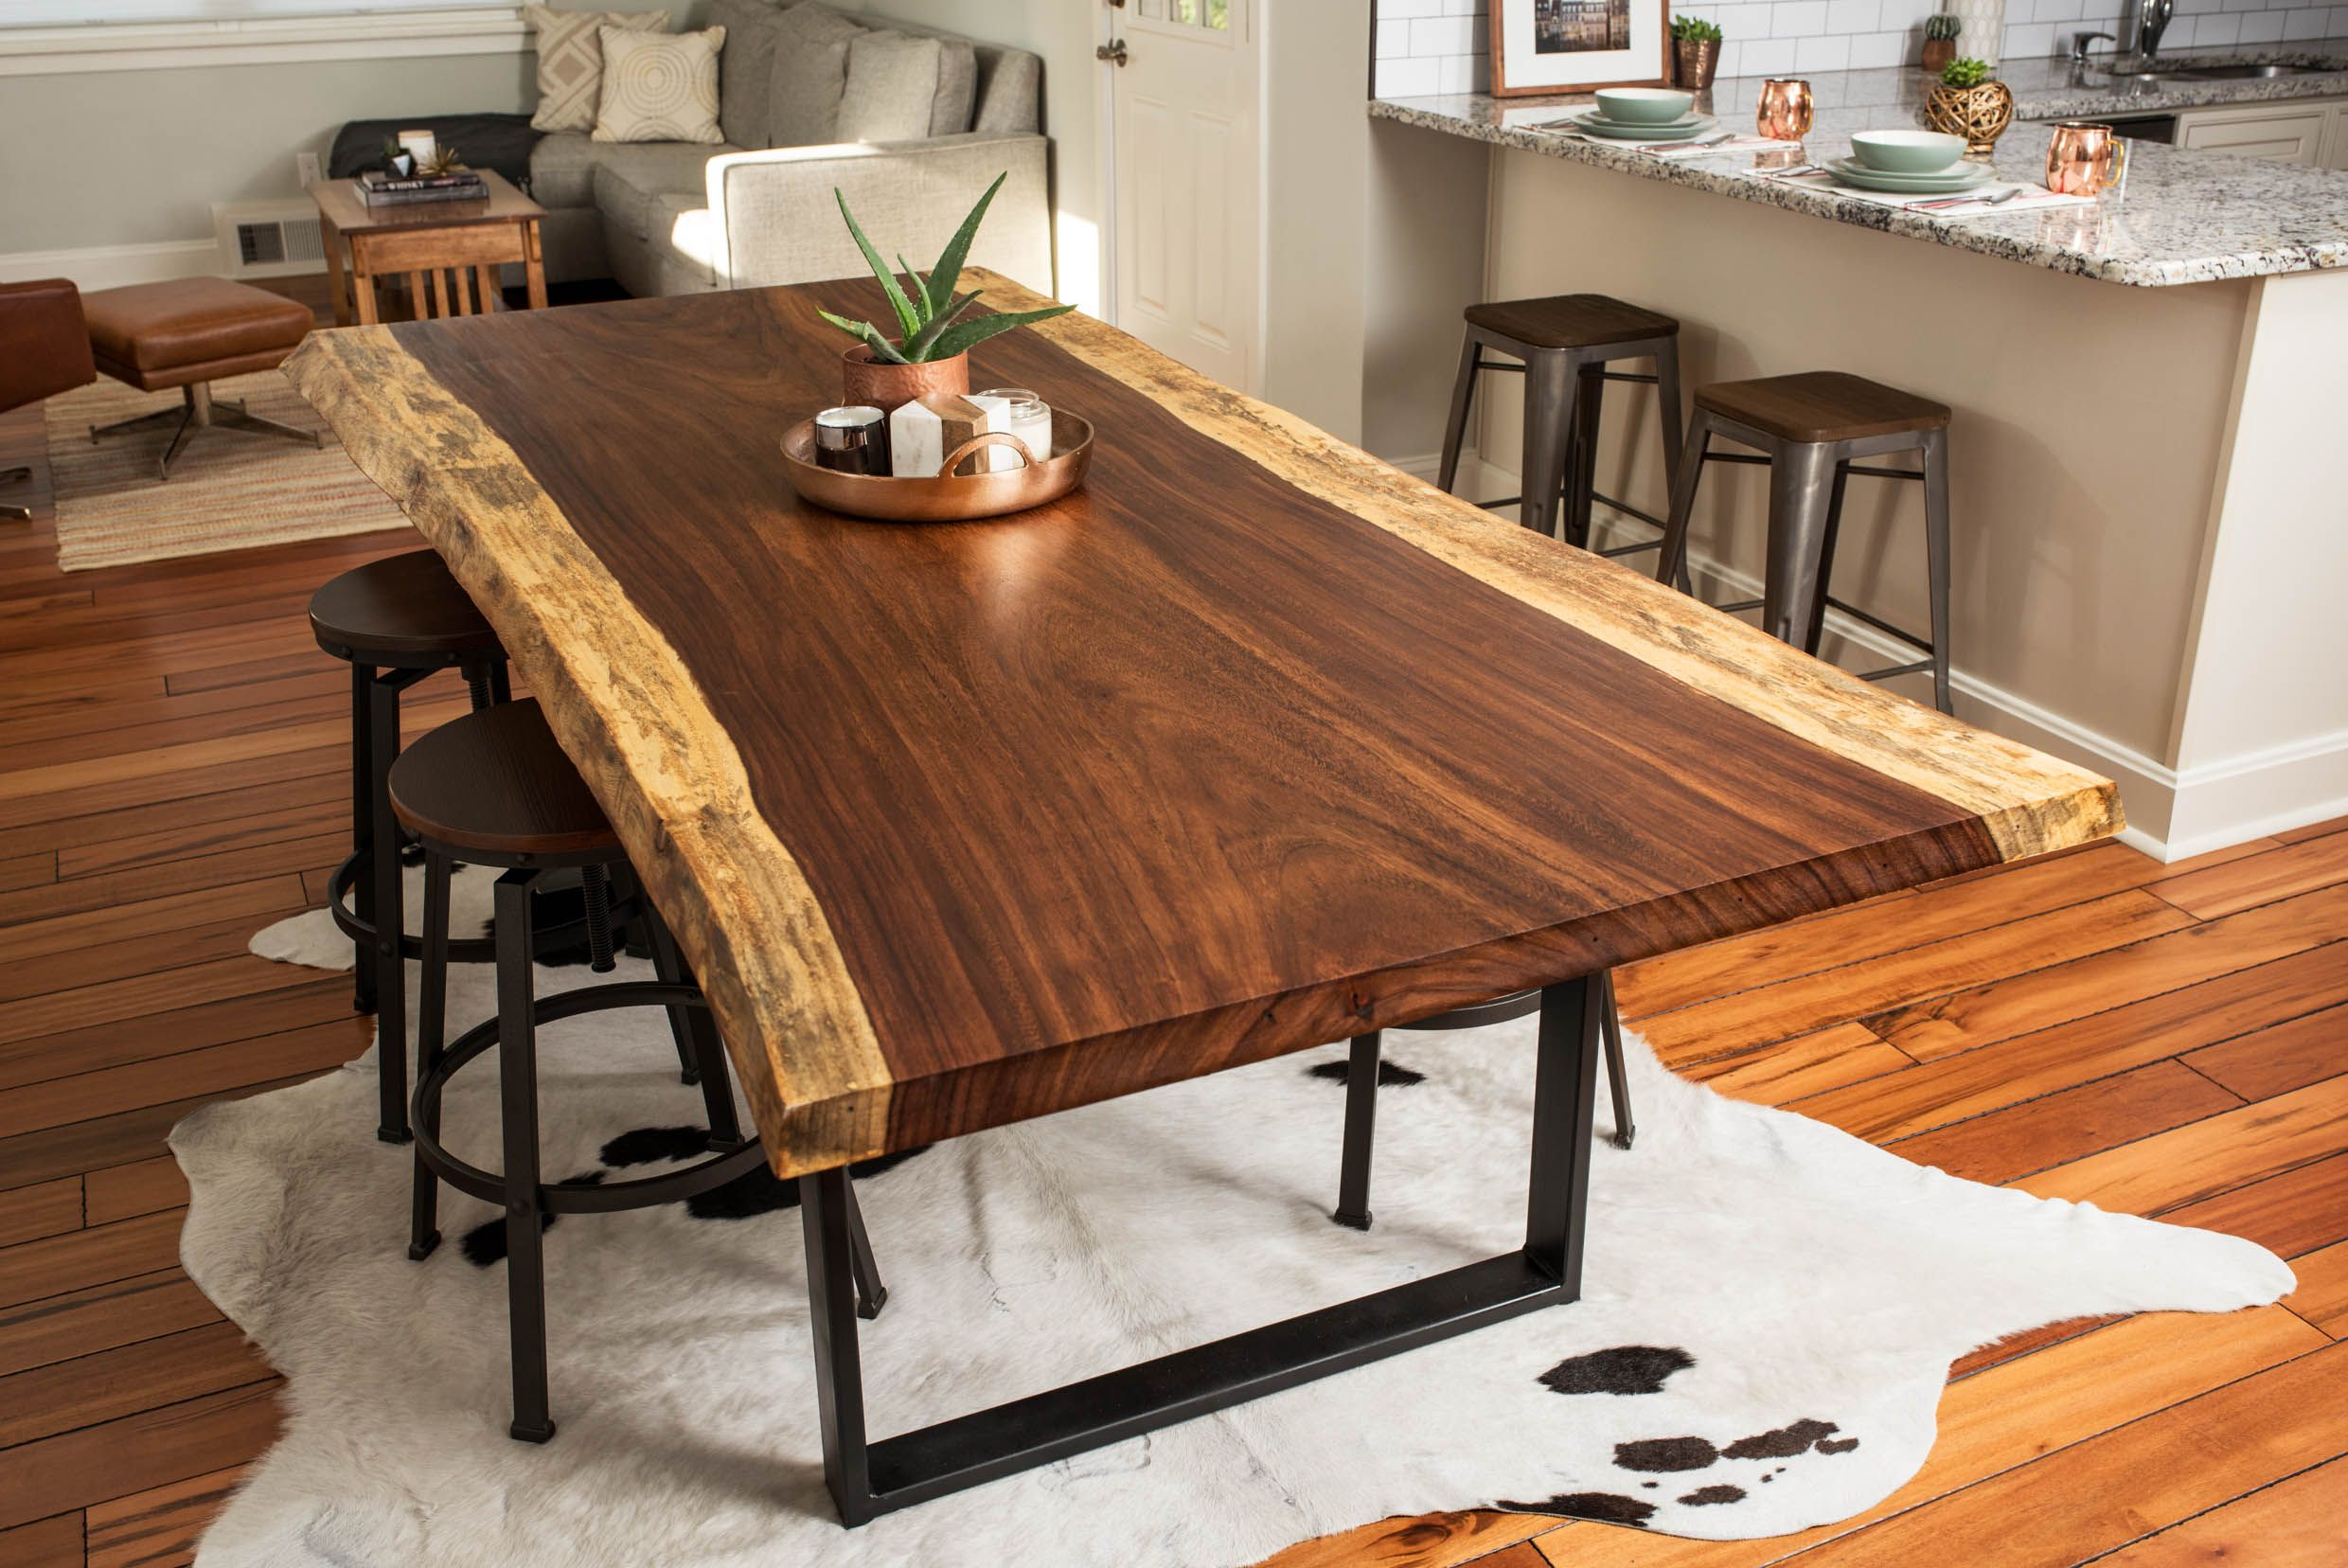 buy a hand made live edge acacia dining conference table made to order from bdc designs. Black Bedroom Furniture Sets. Home Design Ideas